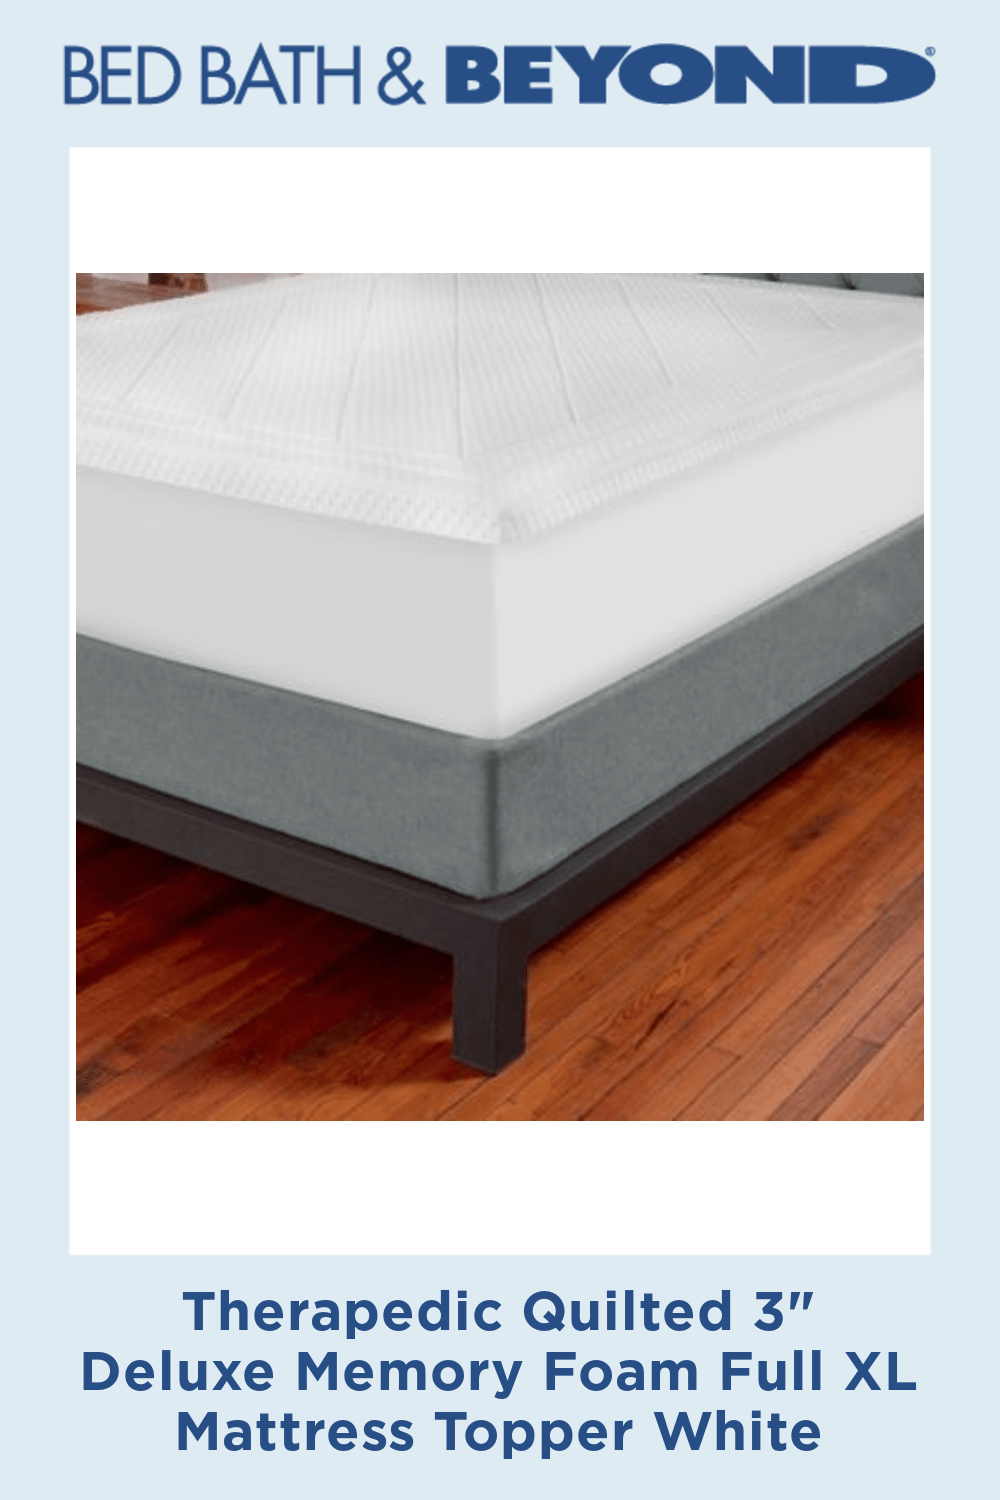 Pin On Ideas For The House Full xl memory foam mattress